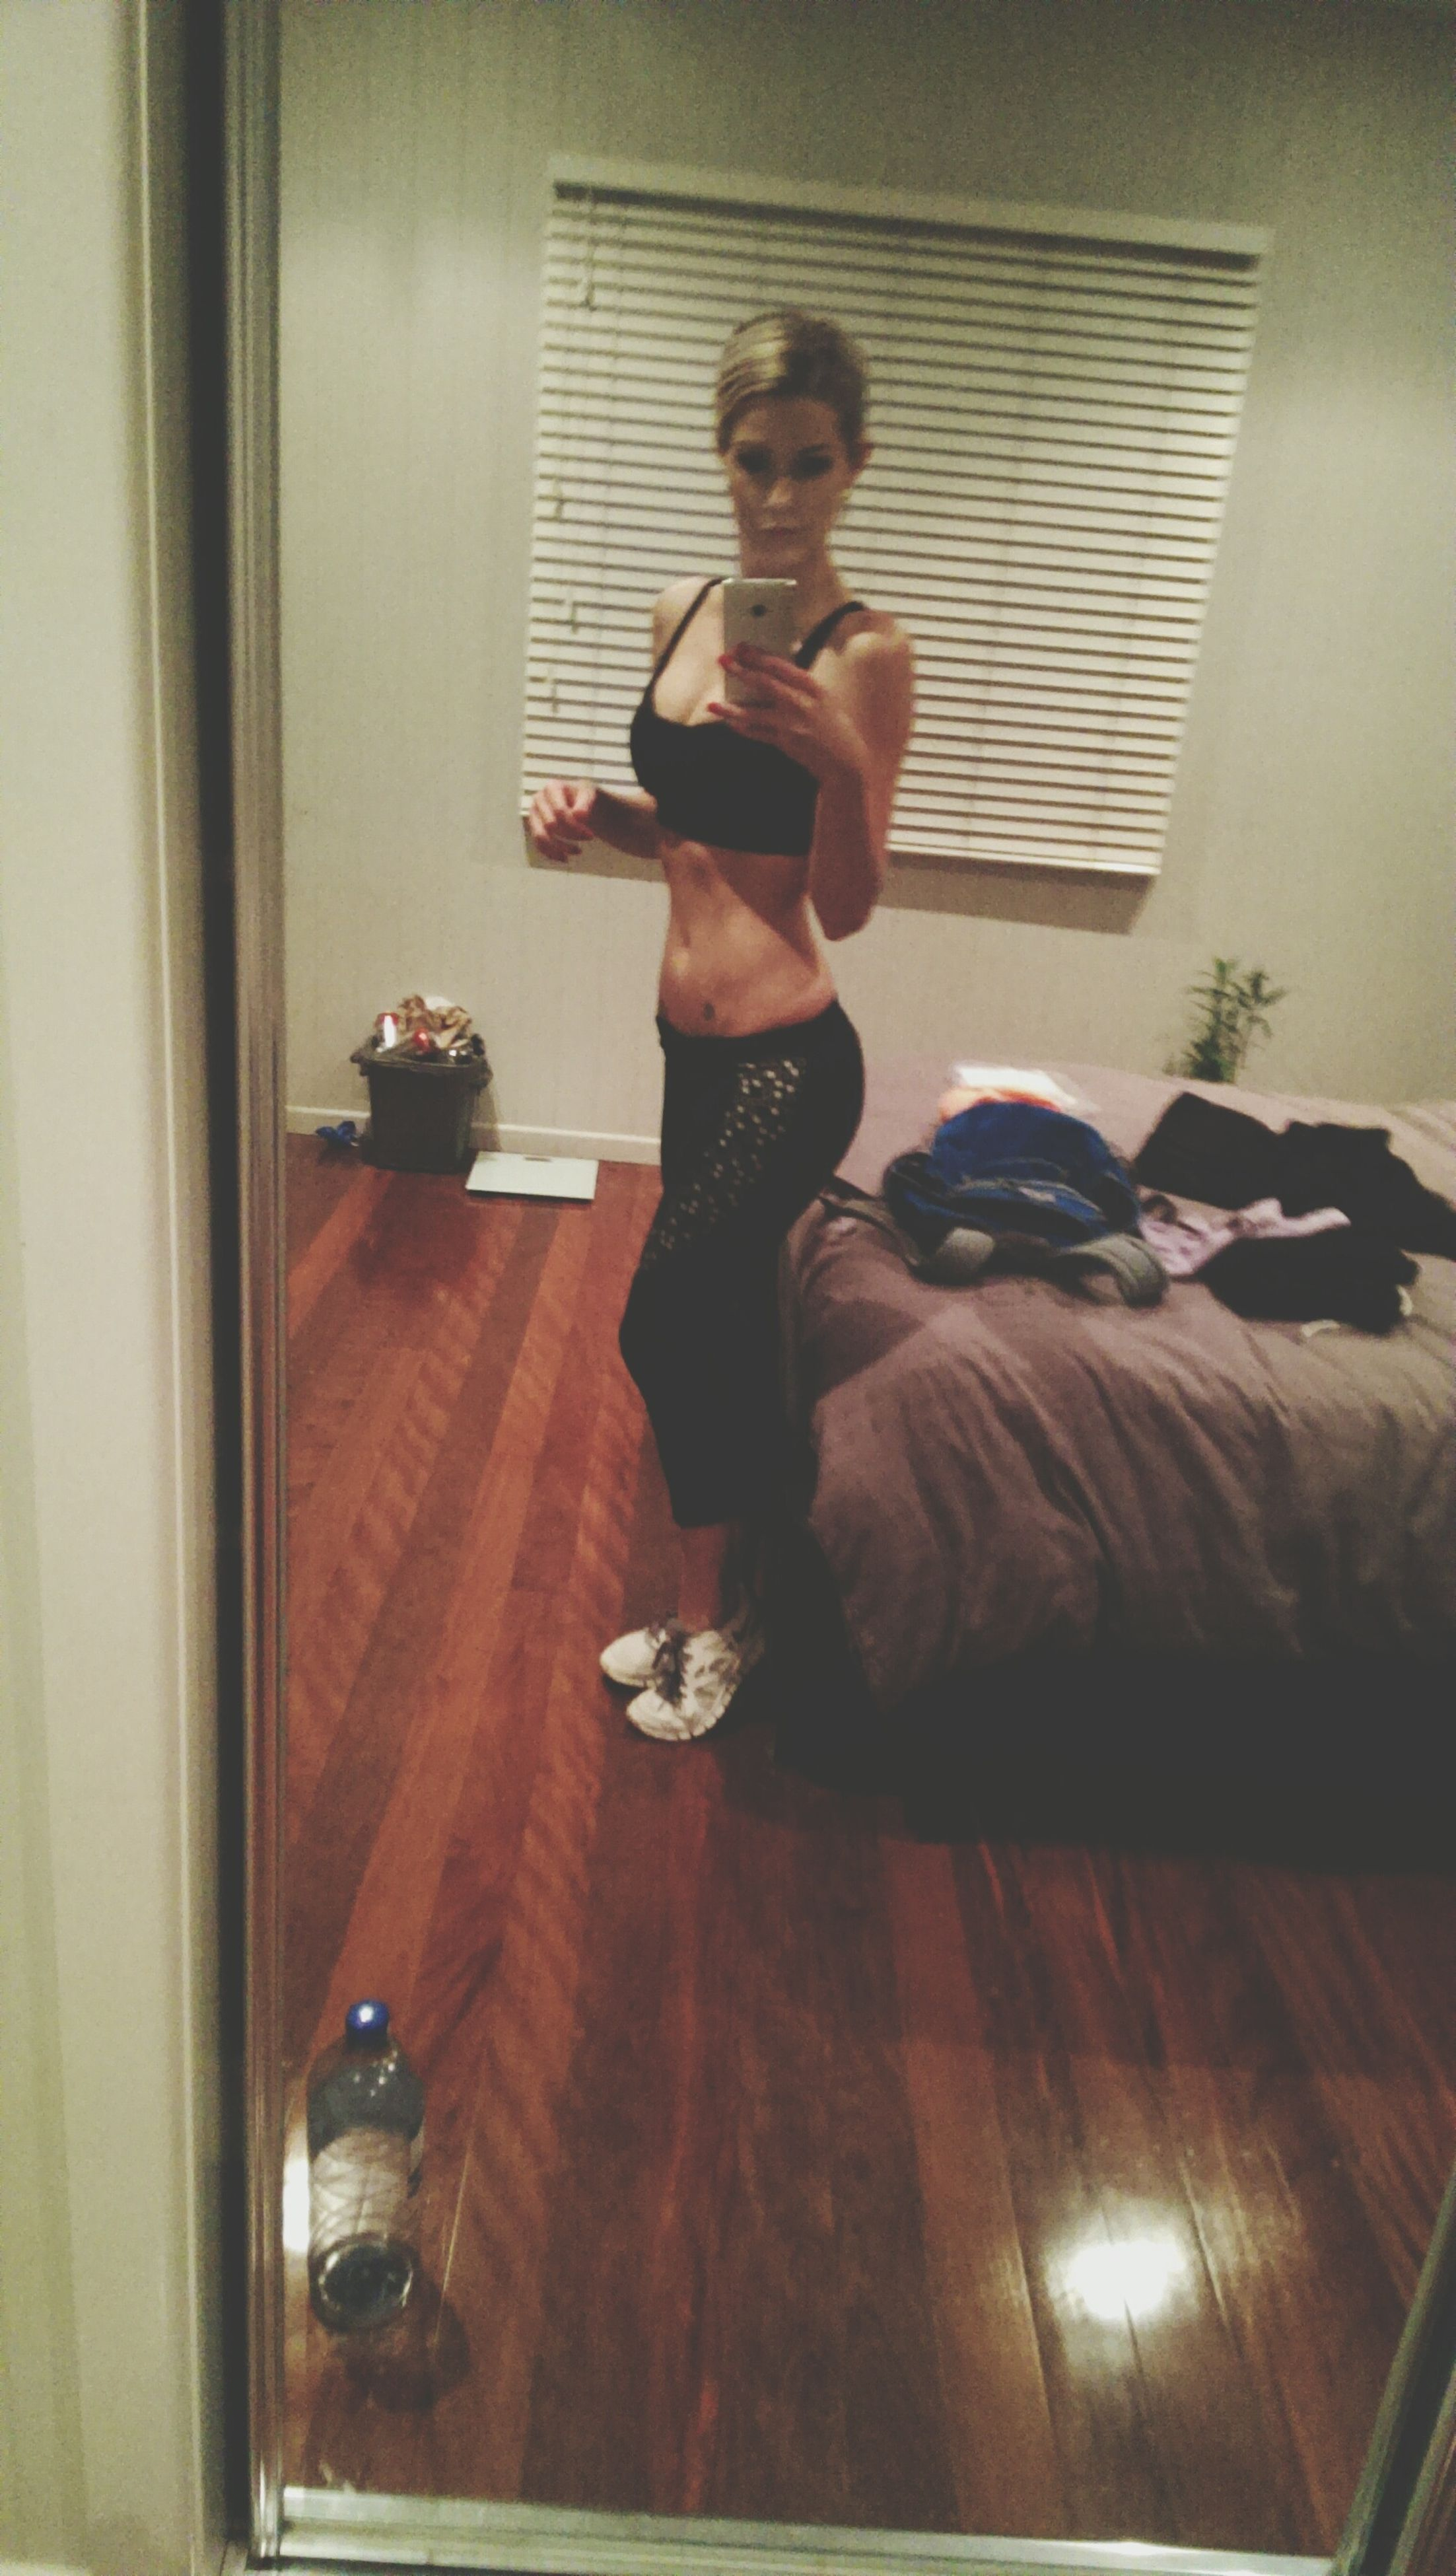 indoors, full length, young adult, lifestyles, person, casual clothing, home interior, leisure activity, young women, sitting, front view, three quarter length, mirror, looking at camera, window, standing, domestic room, door